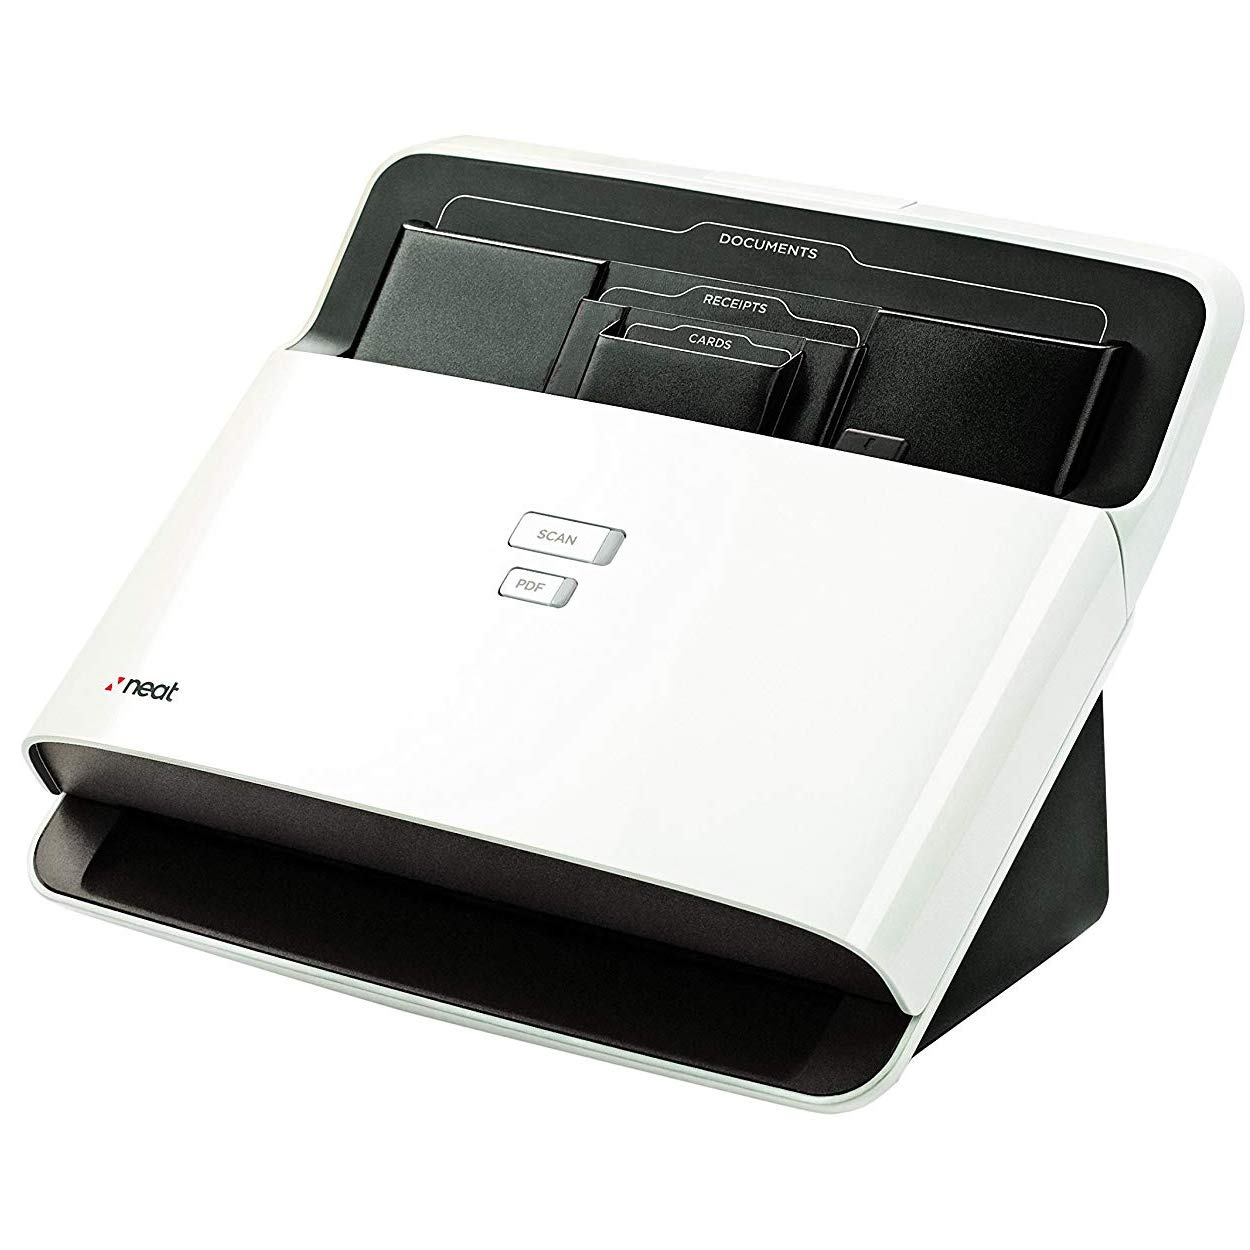 NeatDesk Desktop Document Scanner and Digital Filing System for PC and Mac